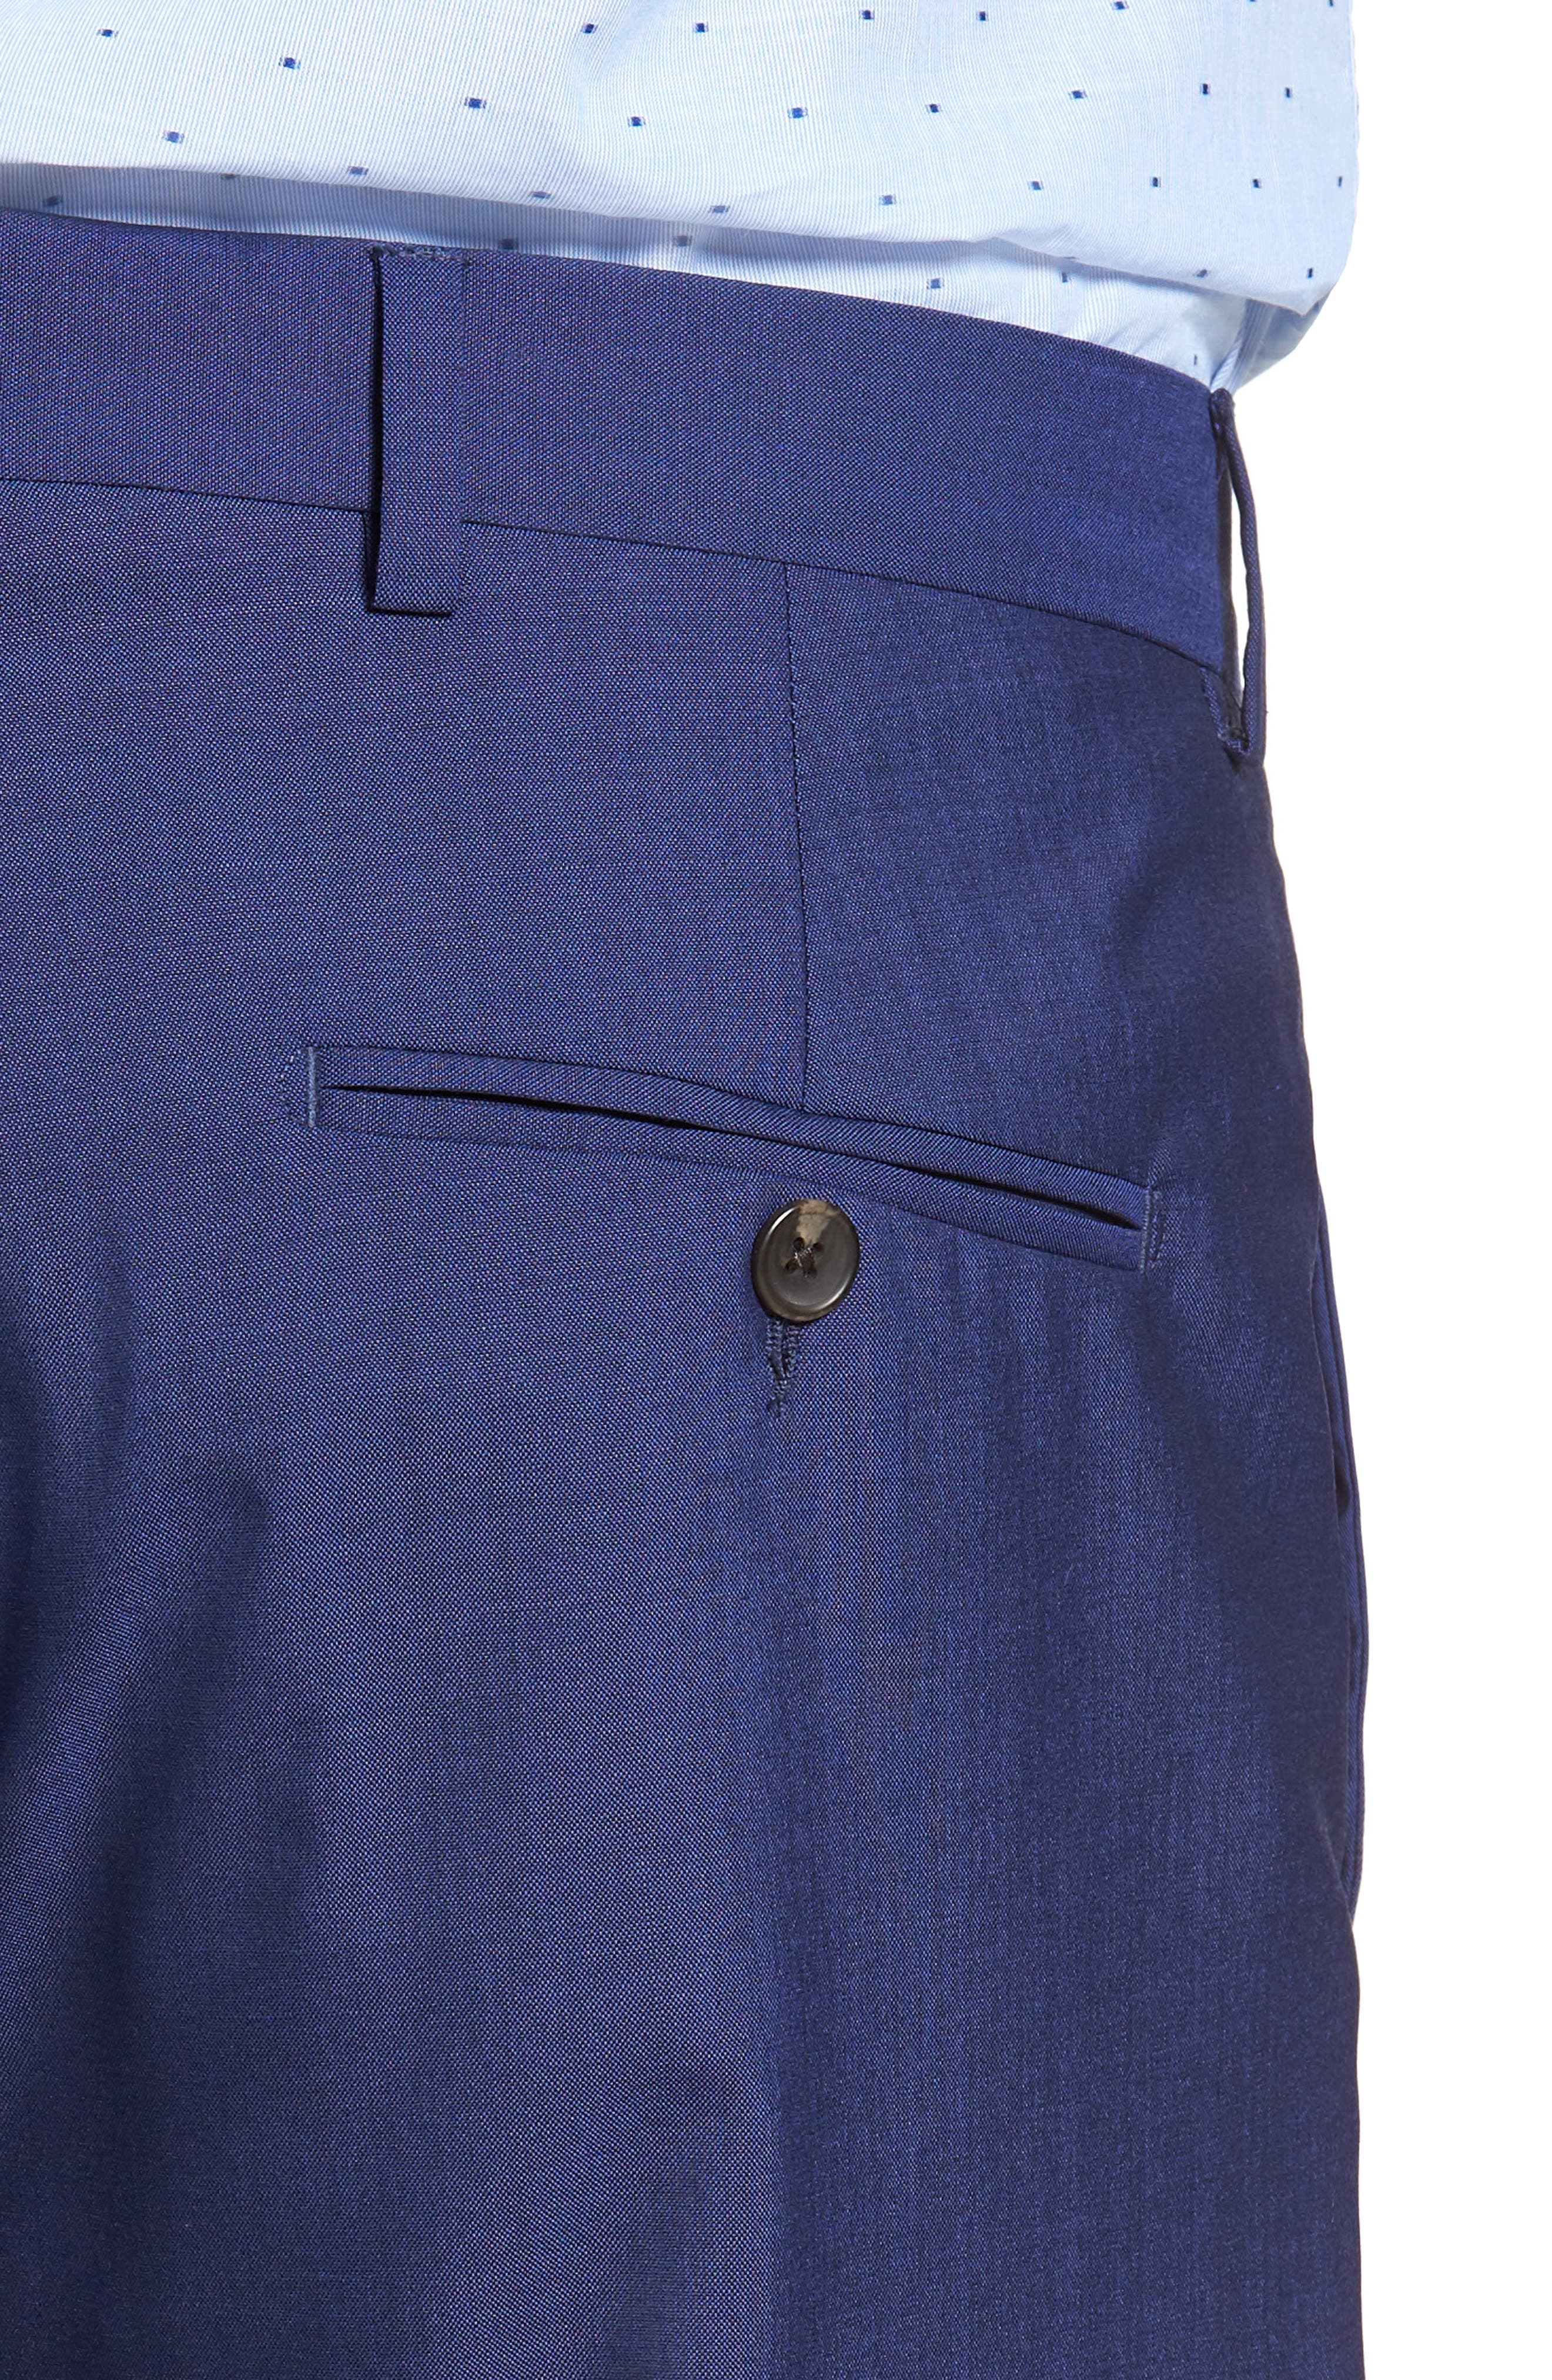 Dagger Flat Front Solid Wool Trousers,                             Alternate thumbnail 4, color,